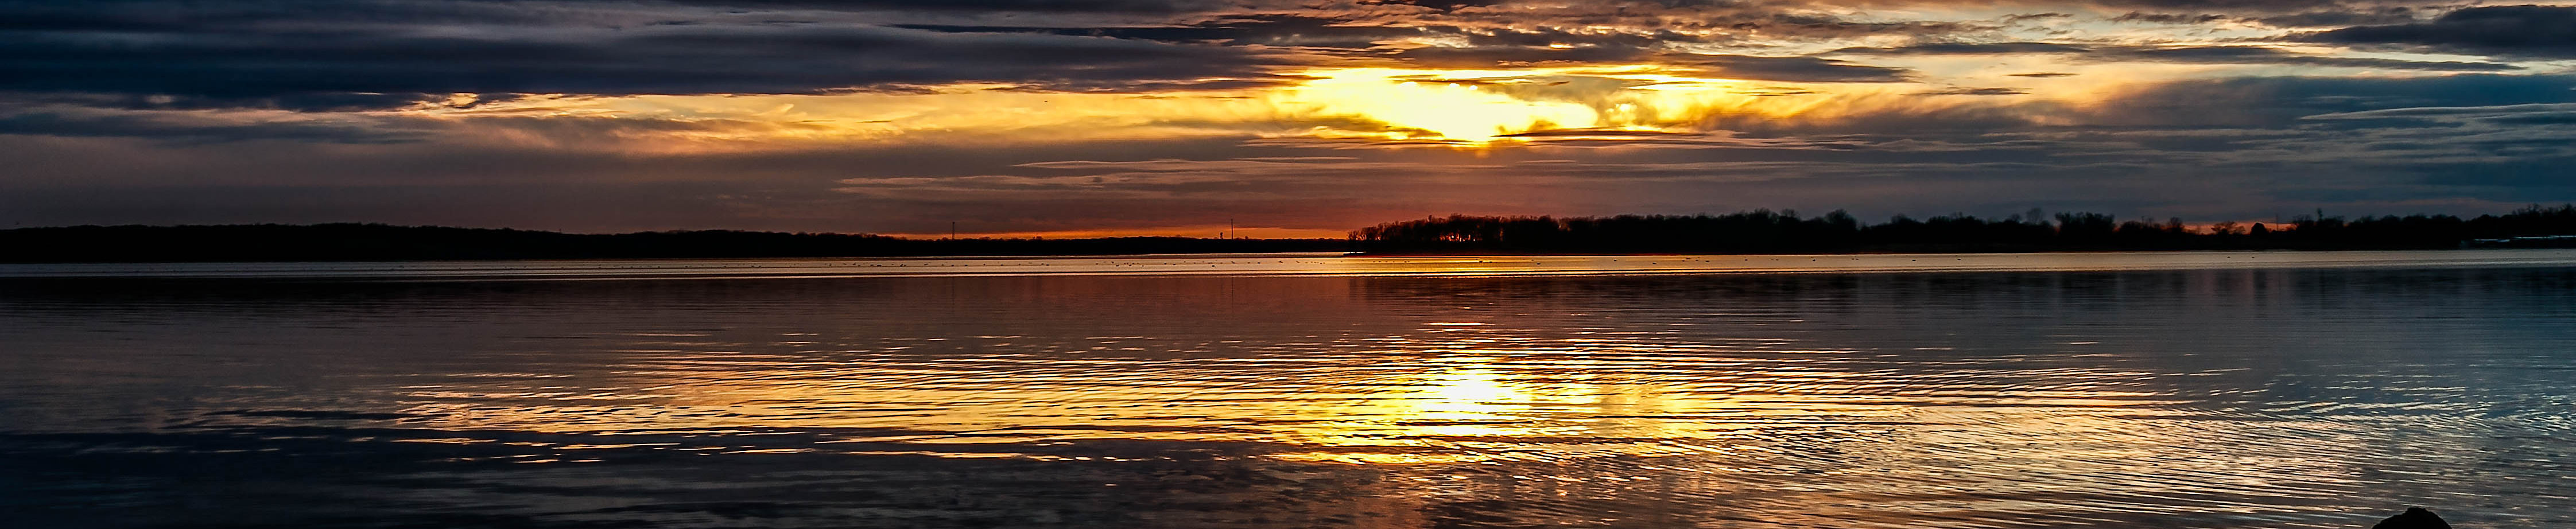 This is an image of a sunset view over a lake in Broken Arrow Oklahoma where ASTA-USA provides professional translation services.